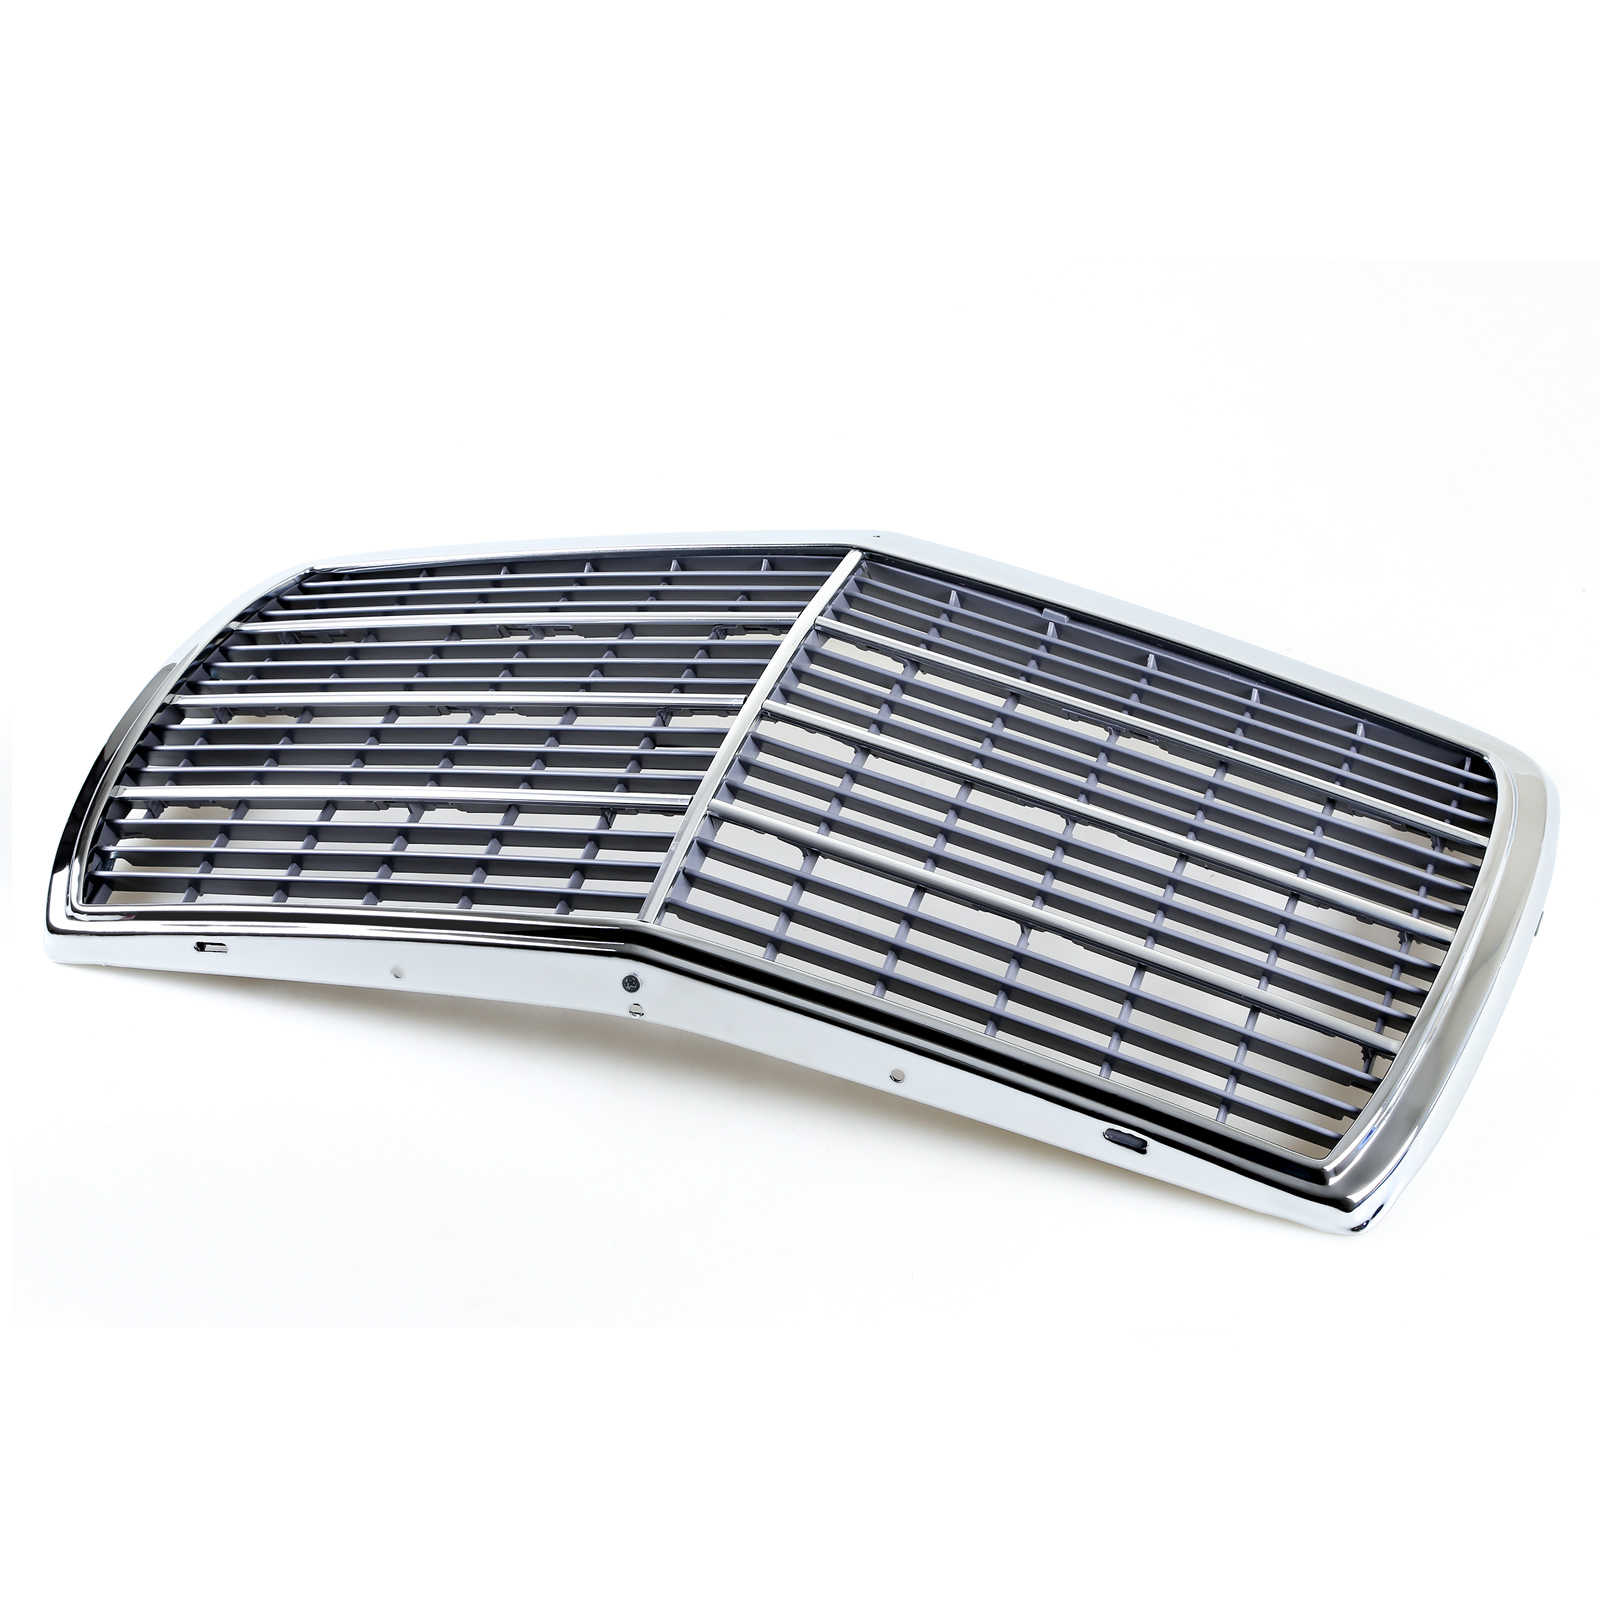 Chrome Auto Front Grill Grille Mesh For Mercedes Benz B: Chrome Frame + Mesh Front Grille For Mercedes W123 E-Class